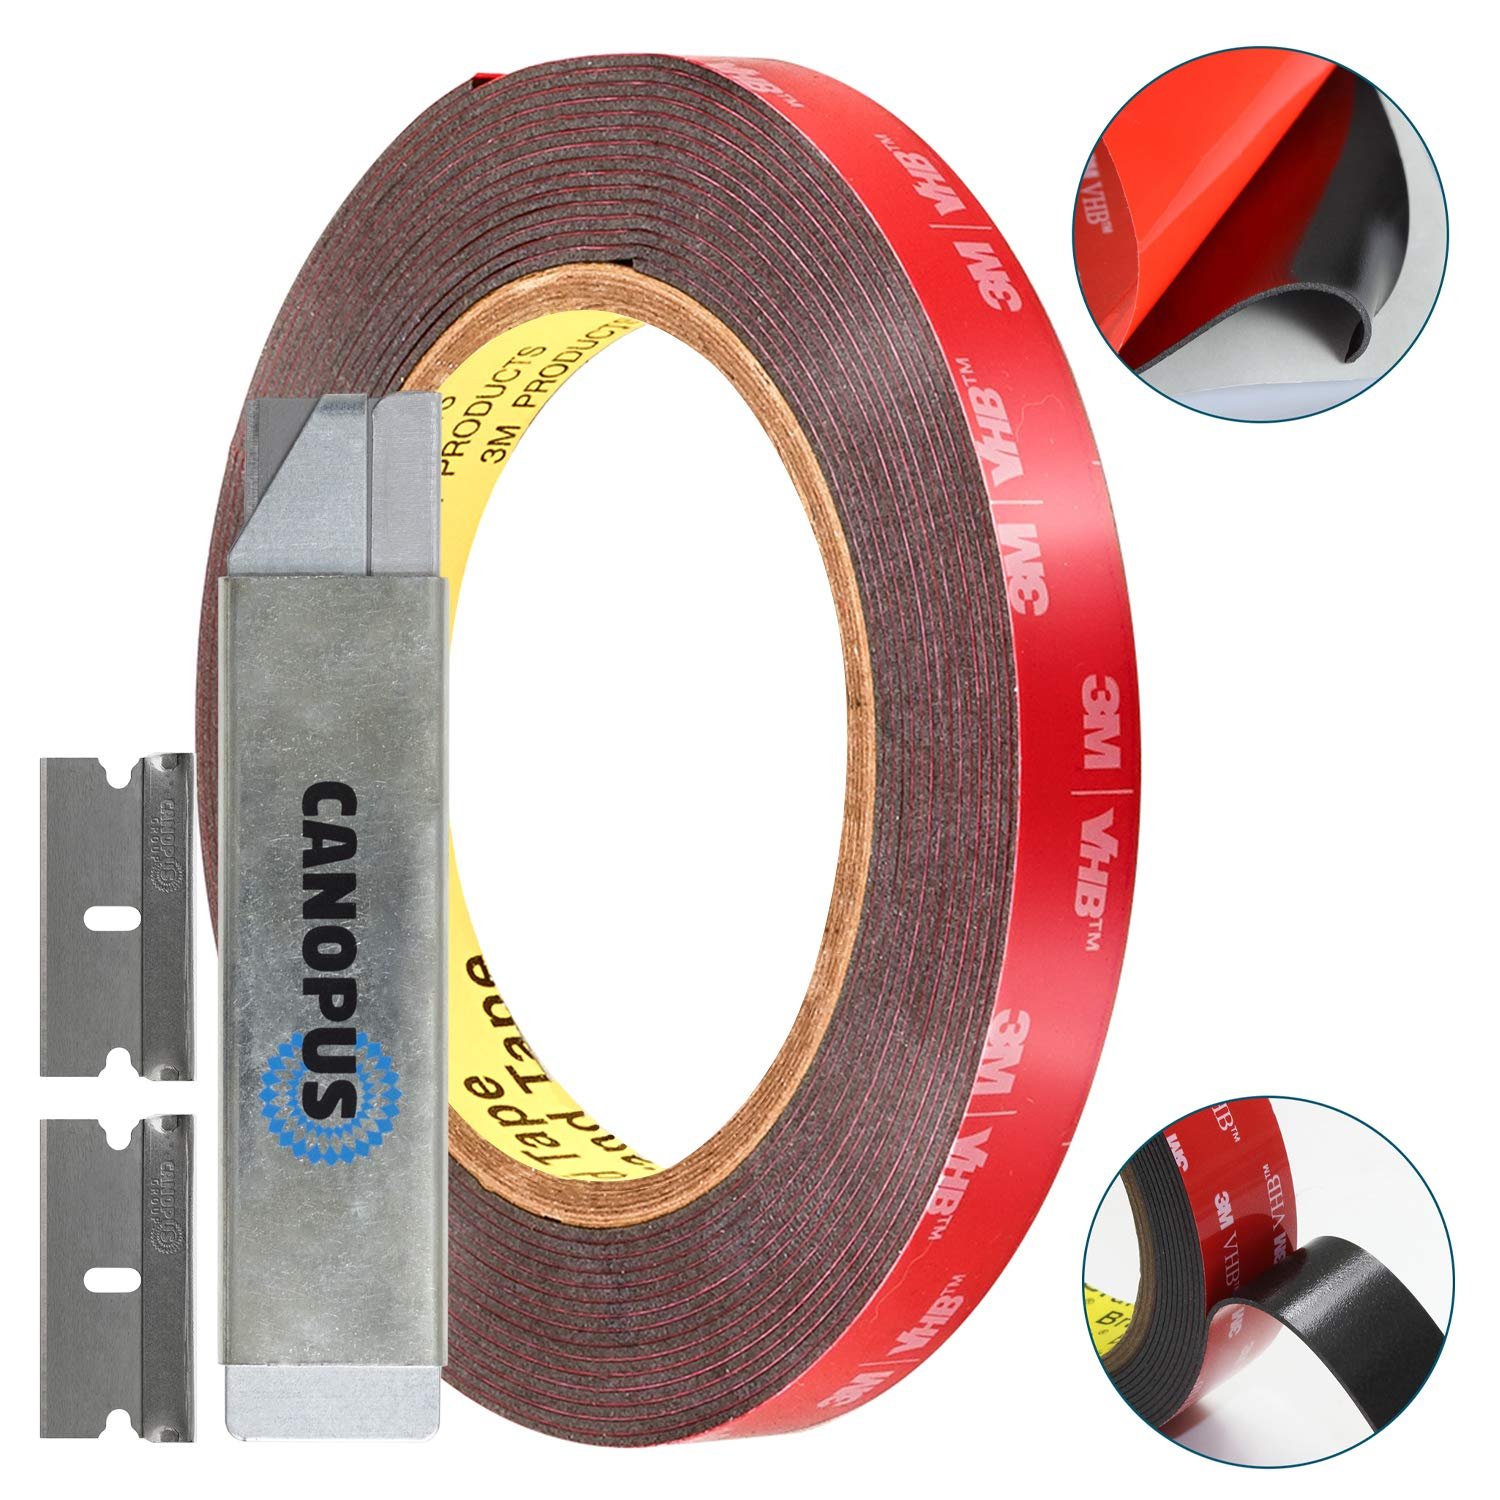 3M Double Sided Tape Heavy Duty: Mounting Tape Converted from 3M VHB 5952, (0.5 in x 15 ft) Super Strong Foam Tape for Outdoor and Indoor